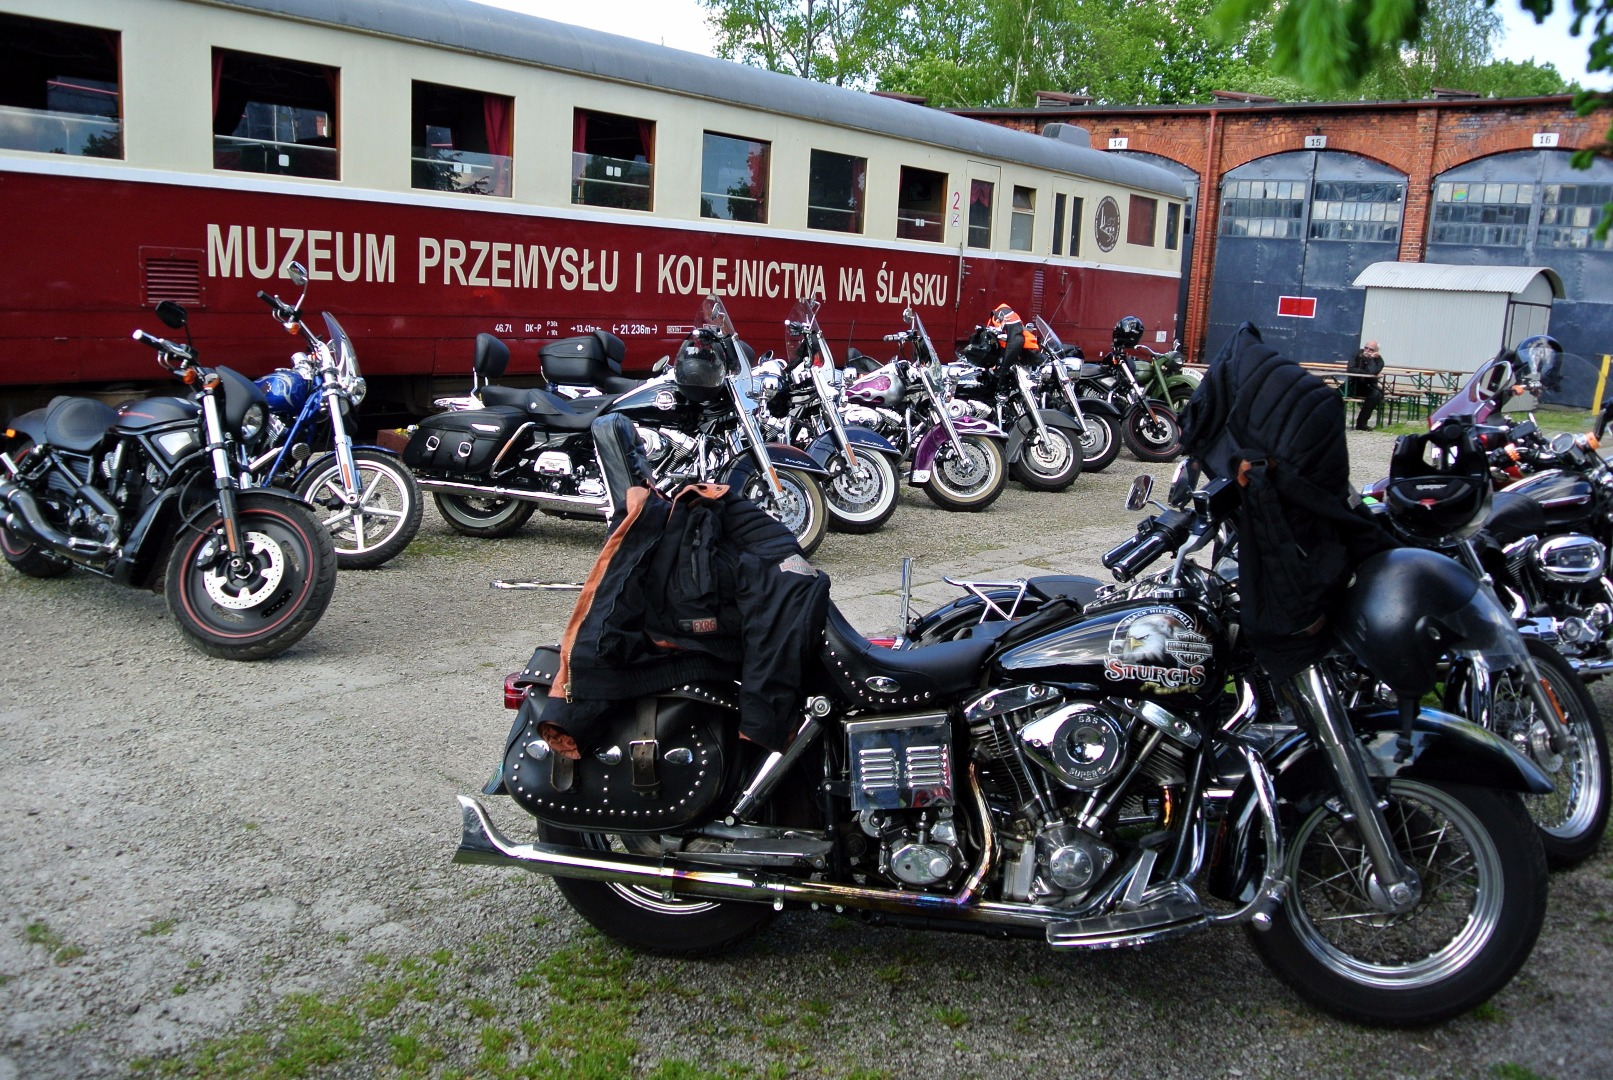 14.maj 2013 - 20.maj 2013 Superrally i Polen